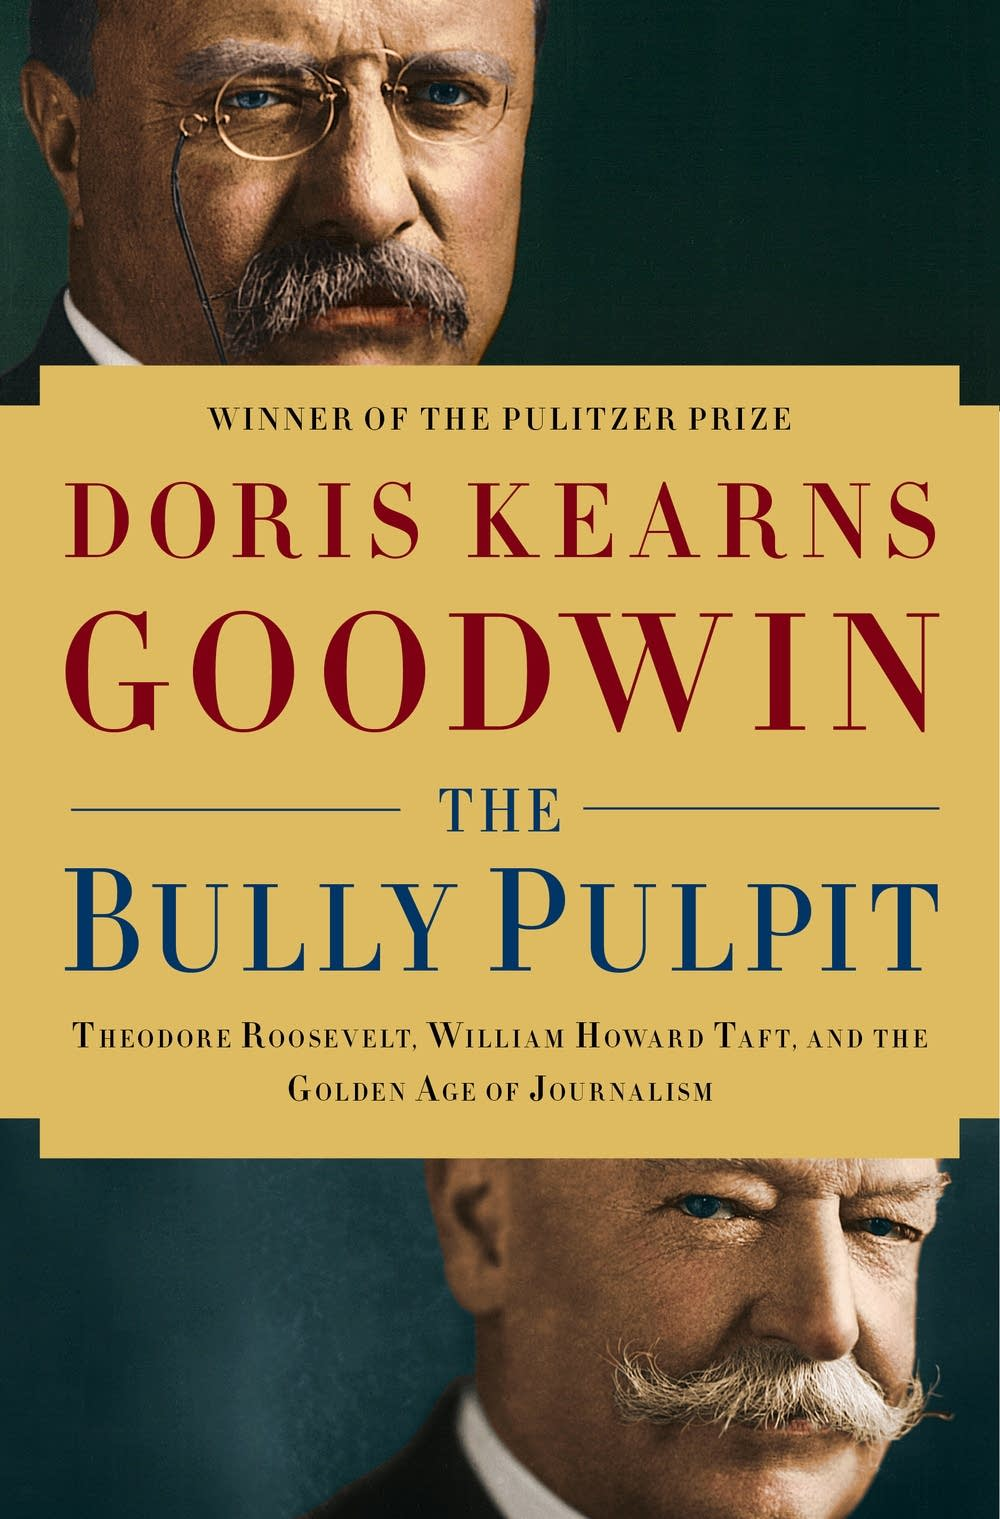 'The Bully Pulpit' by Doris Kearns Goodwin